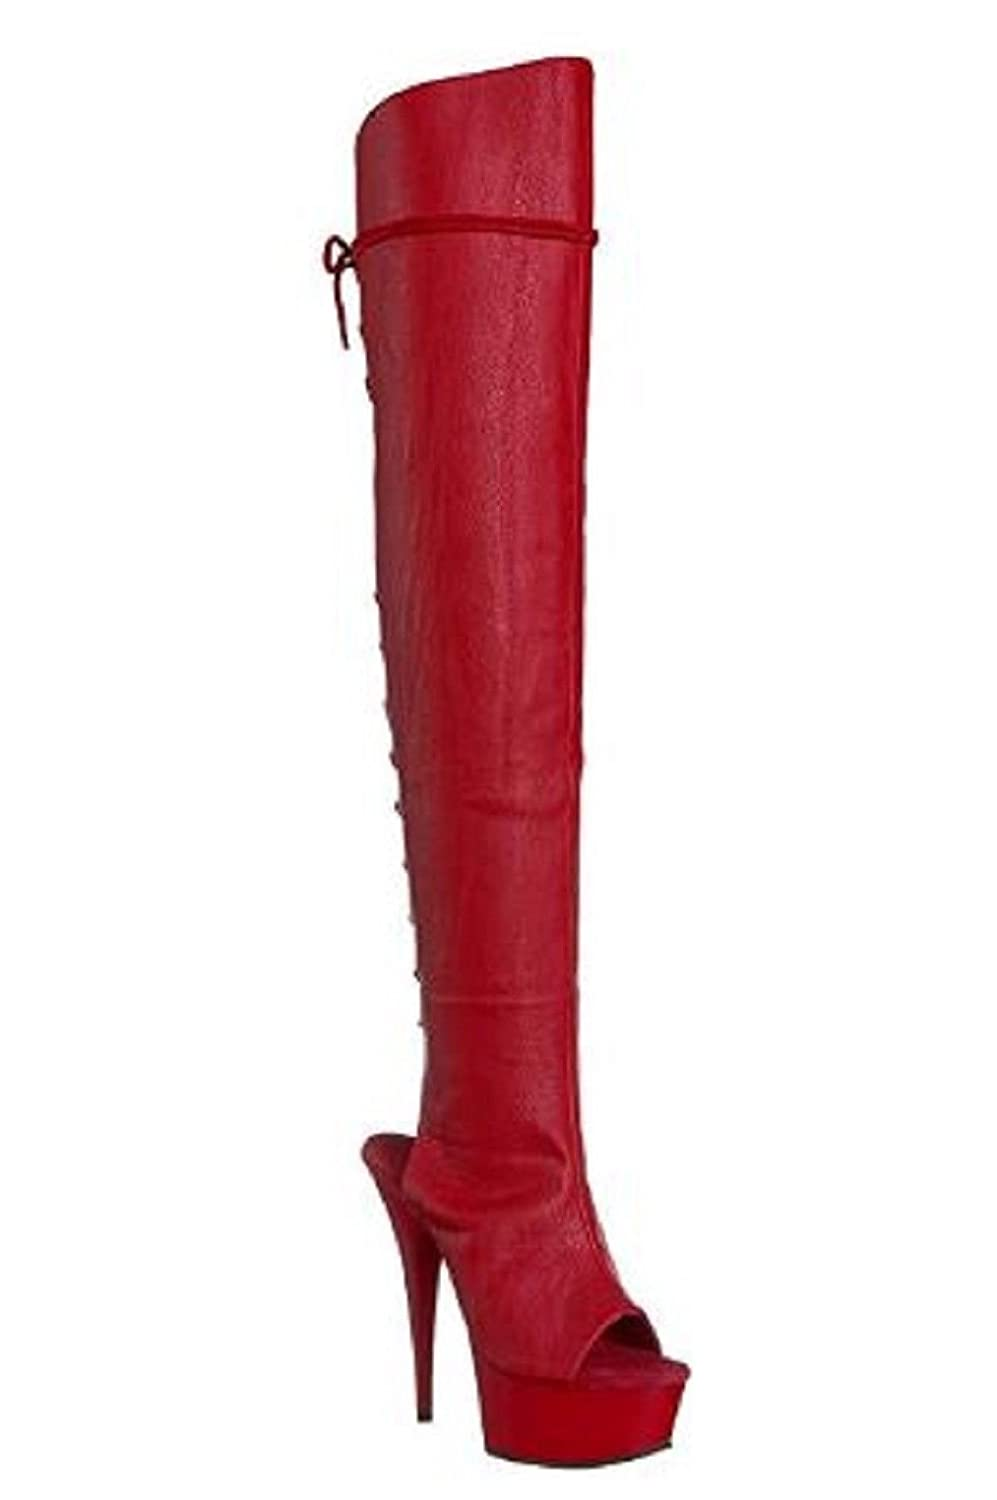 Pleaser Delight-3019 Exotic Pole Dancing, Clubwear, Sexy Thigh High Boot. B01MD1Y93X 9 B(M) US|Red Faux Leather/Red Matte